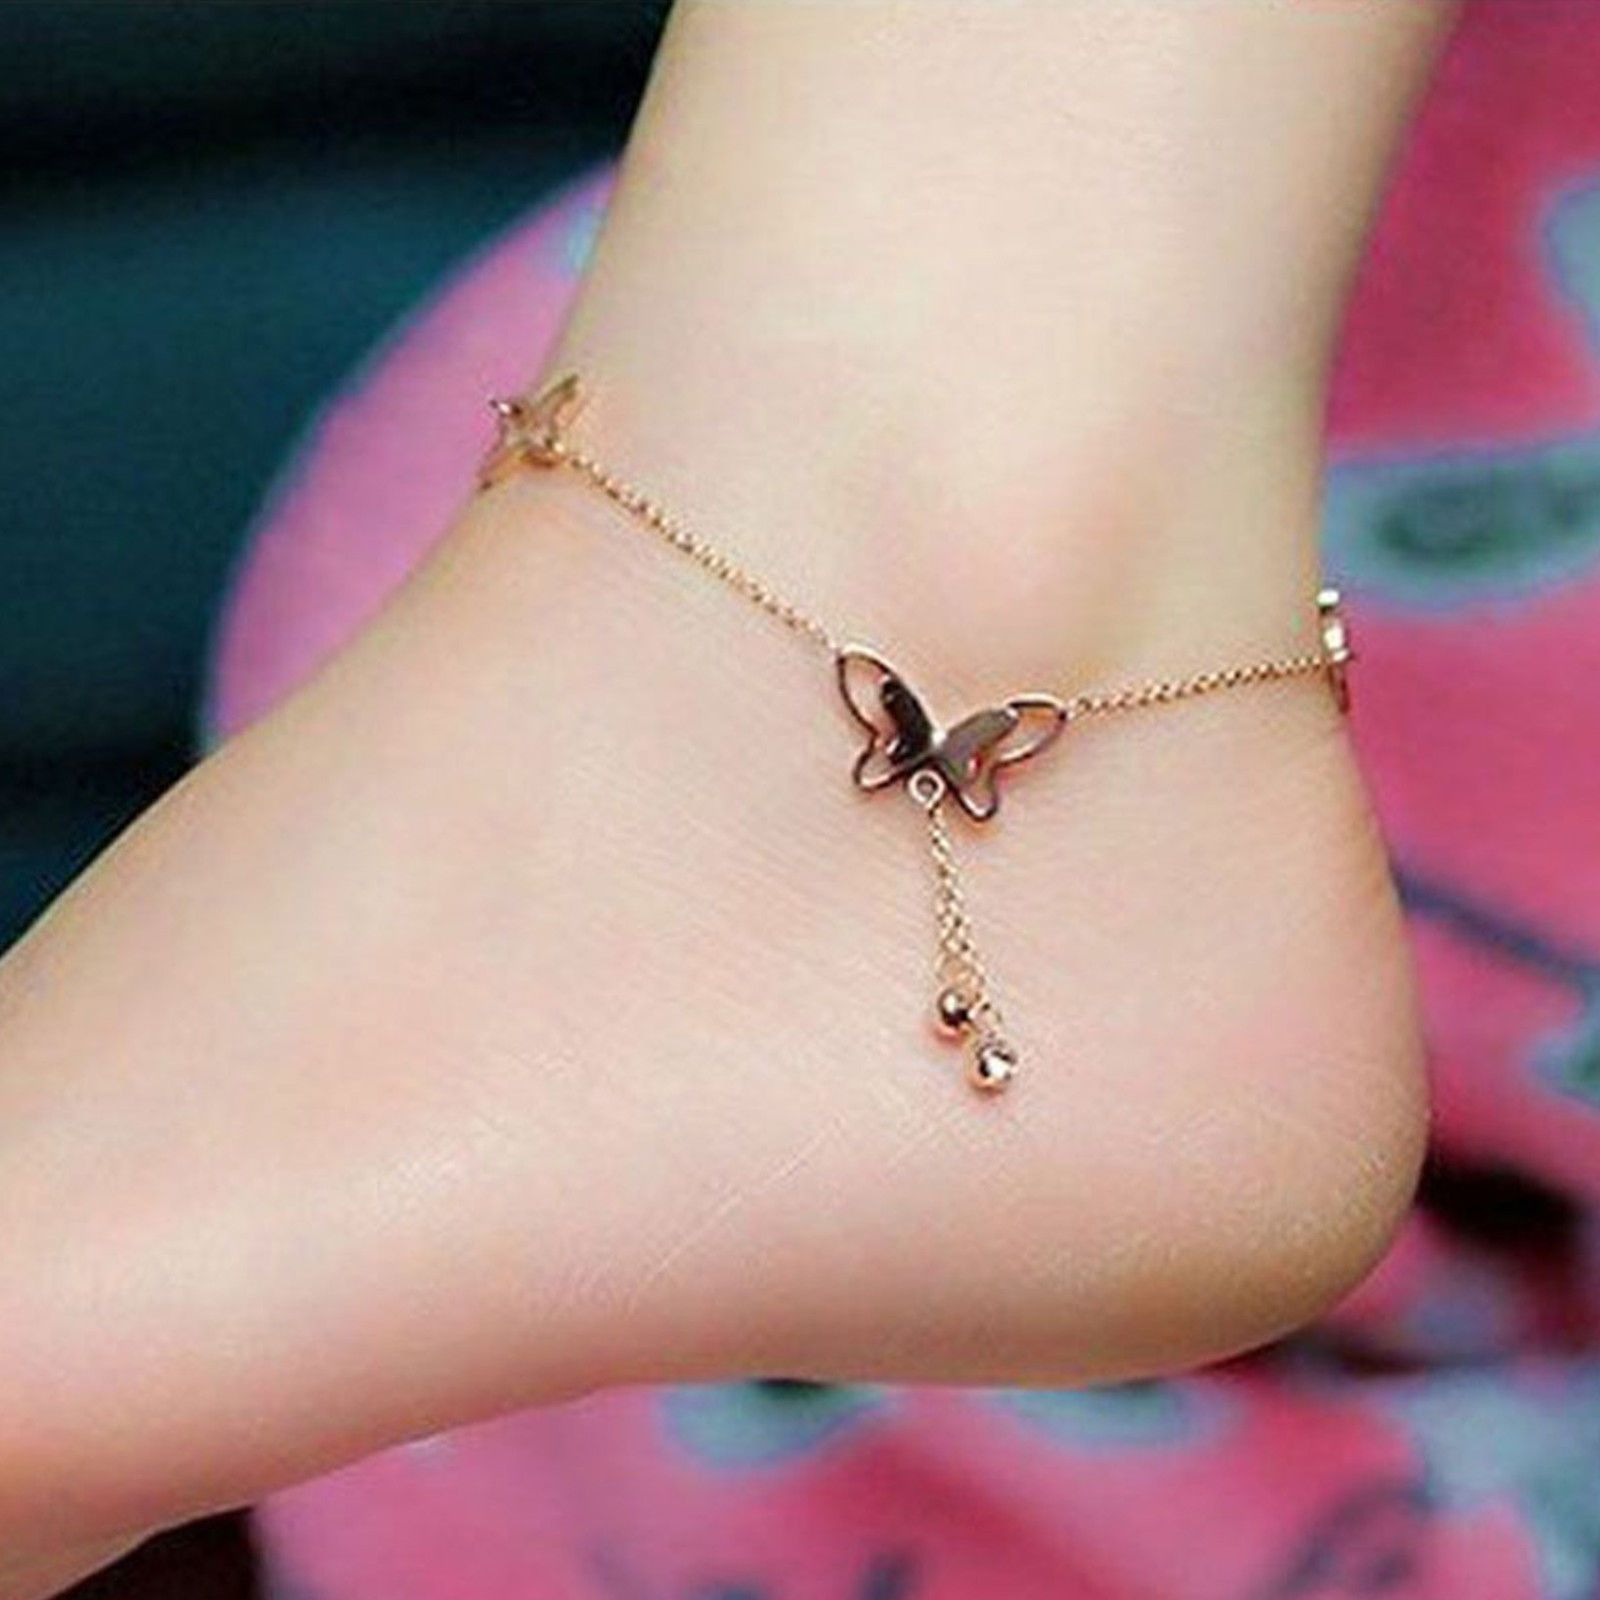 henna designs michal womens on flower charm tatting foot bracelet ankle hand pin tattoos stomach anklet bracelets and by reshef tattoo pinterest